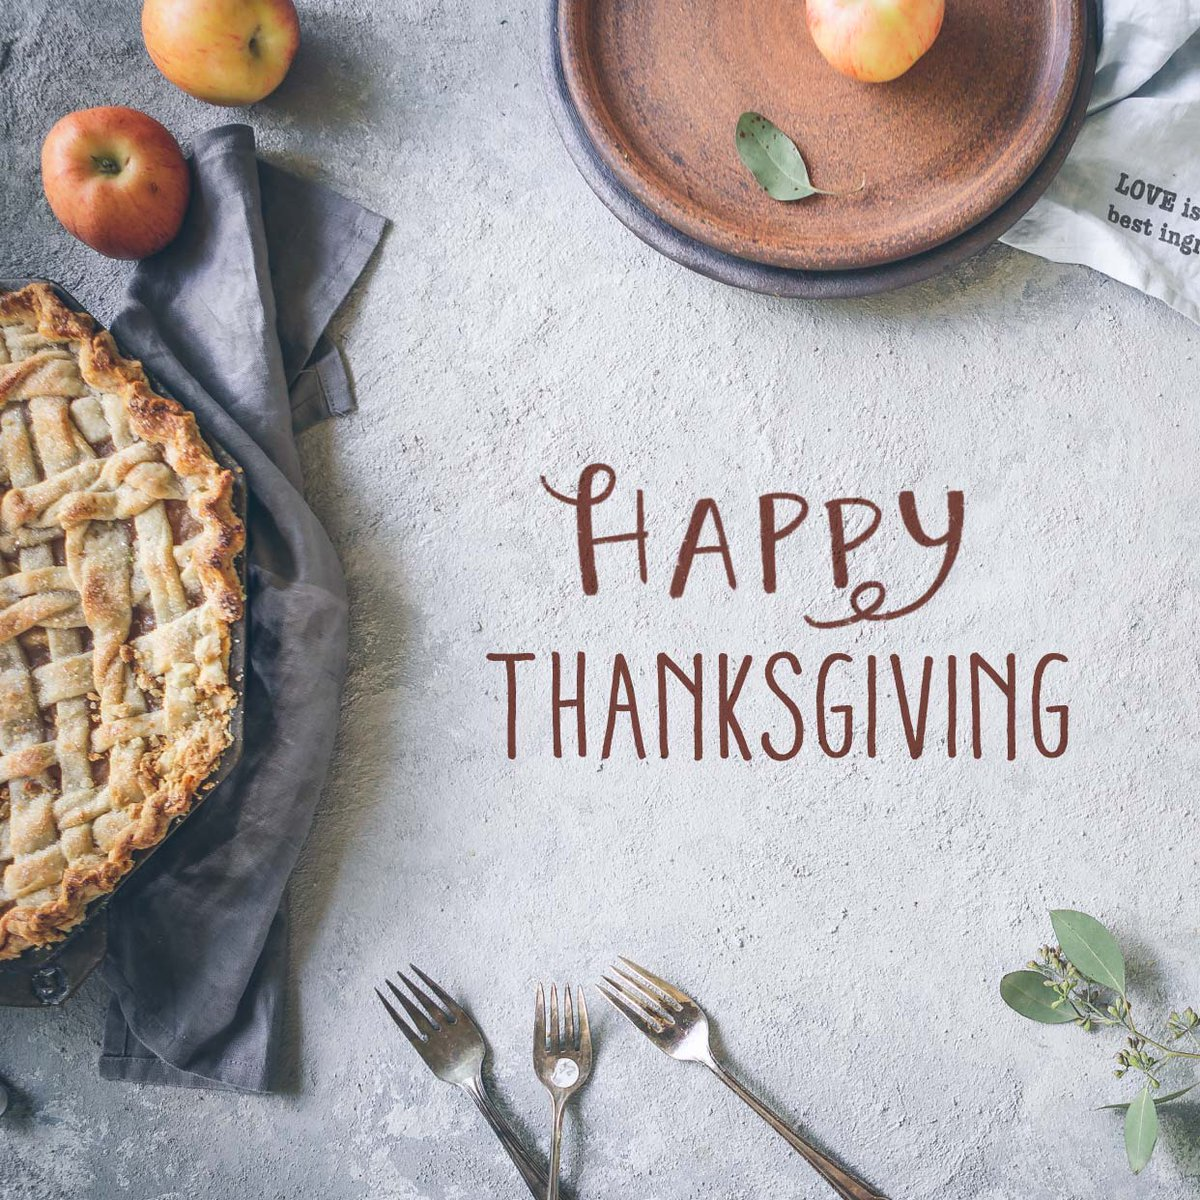 We're grateful for a lot of things but mostly all of our amazing patients! HAPPY THANKSGIVING!  #Grateful &amp; #Bles... <br>http://pic.twitter.com/cBUQ3j4ZrB